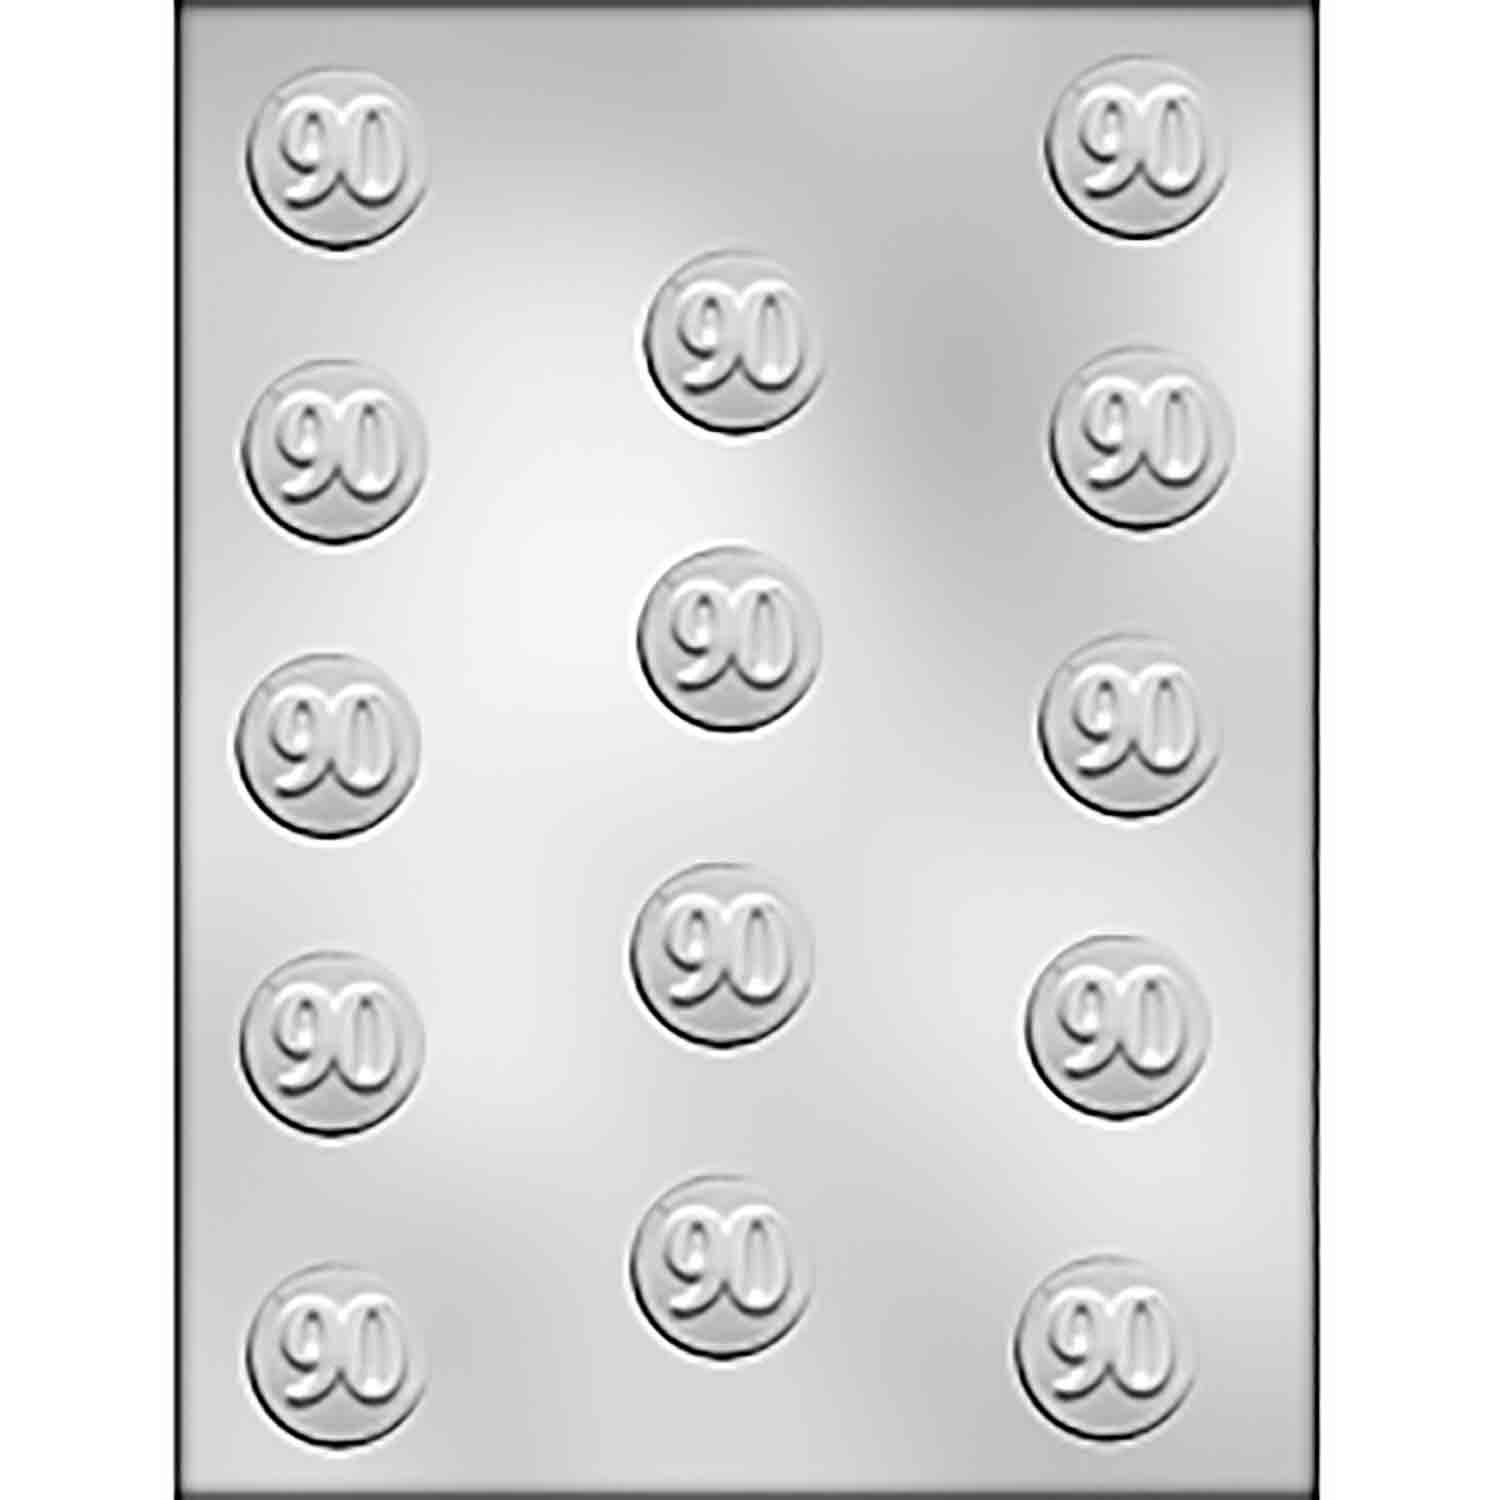 90 Mint Chocolate Candy Mold